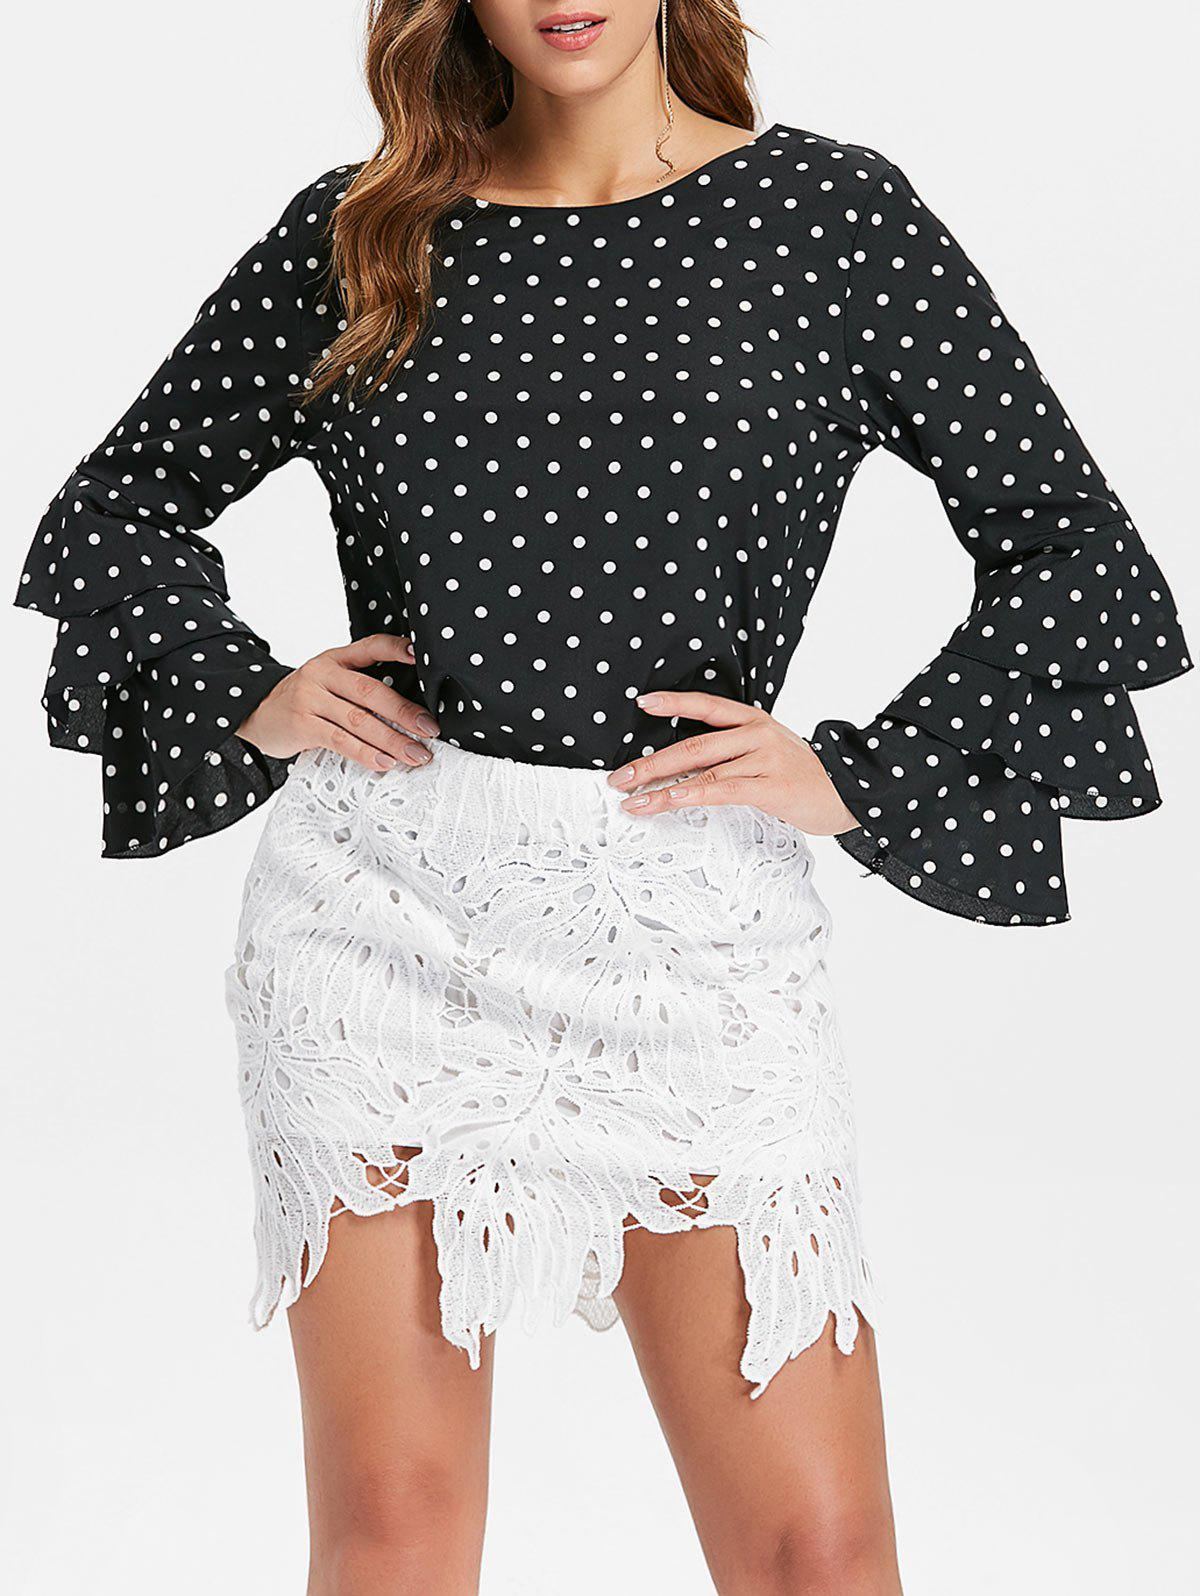 Shop Bell Sleeve Dotted Blouse